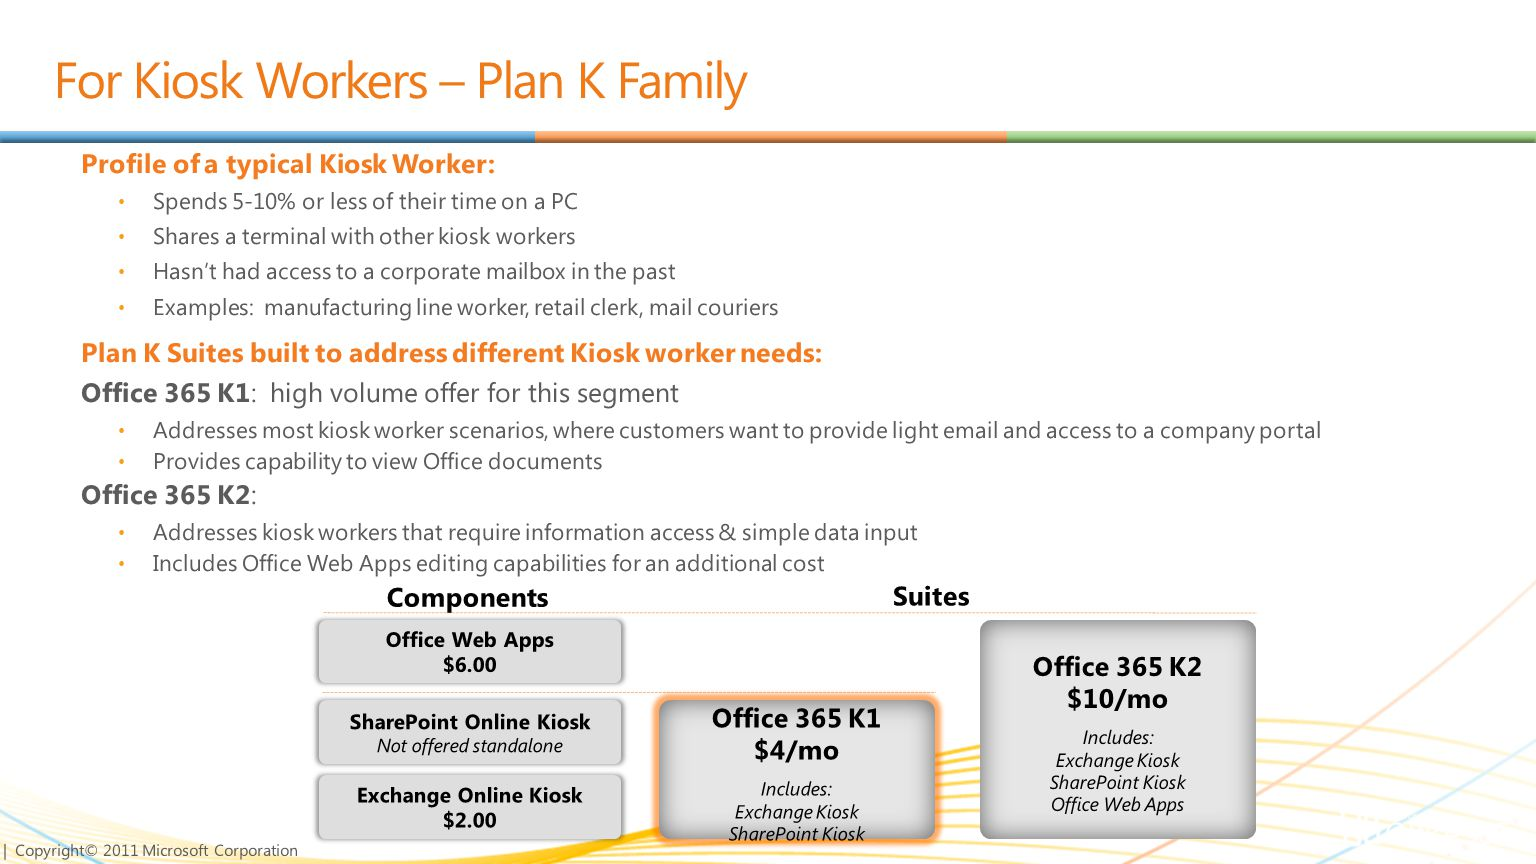 | Copyright© 2011 Microsoft Corporation For Kiosk Workers – Plan K Family Profile of a typical Kiosk Worker: Spends 5-10% or less of their time on a PC Shares a terminal with other kiosk workers Hasnt had access to a corporate mailbox in the past Examples: manufacturing line worker, retail clerk, mail couriers Plan K Suites built to address different Kiosk worker needs: Office 365 K1: high volume offer for this segment Addresses most kiosk worker scenarios, where customers want to provide light email and access to a company portal Provides capability to view Office documents Office 365 K2: Addresses kiosk workers that require information access & simple data input Includes Office Web Apps editing capabilities for an additional cost